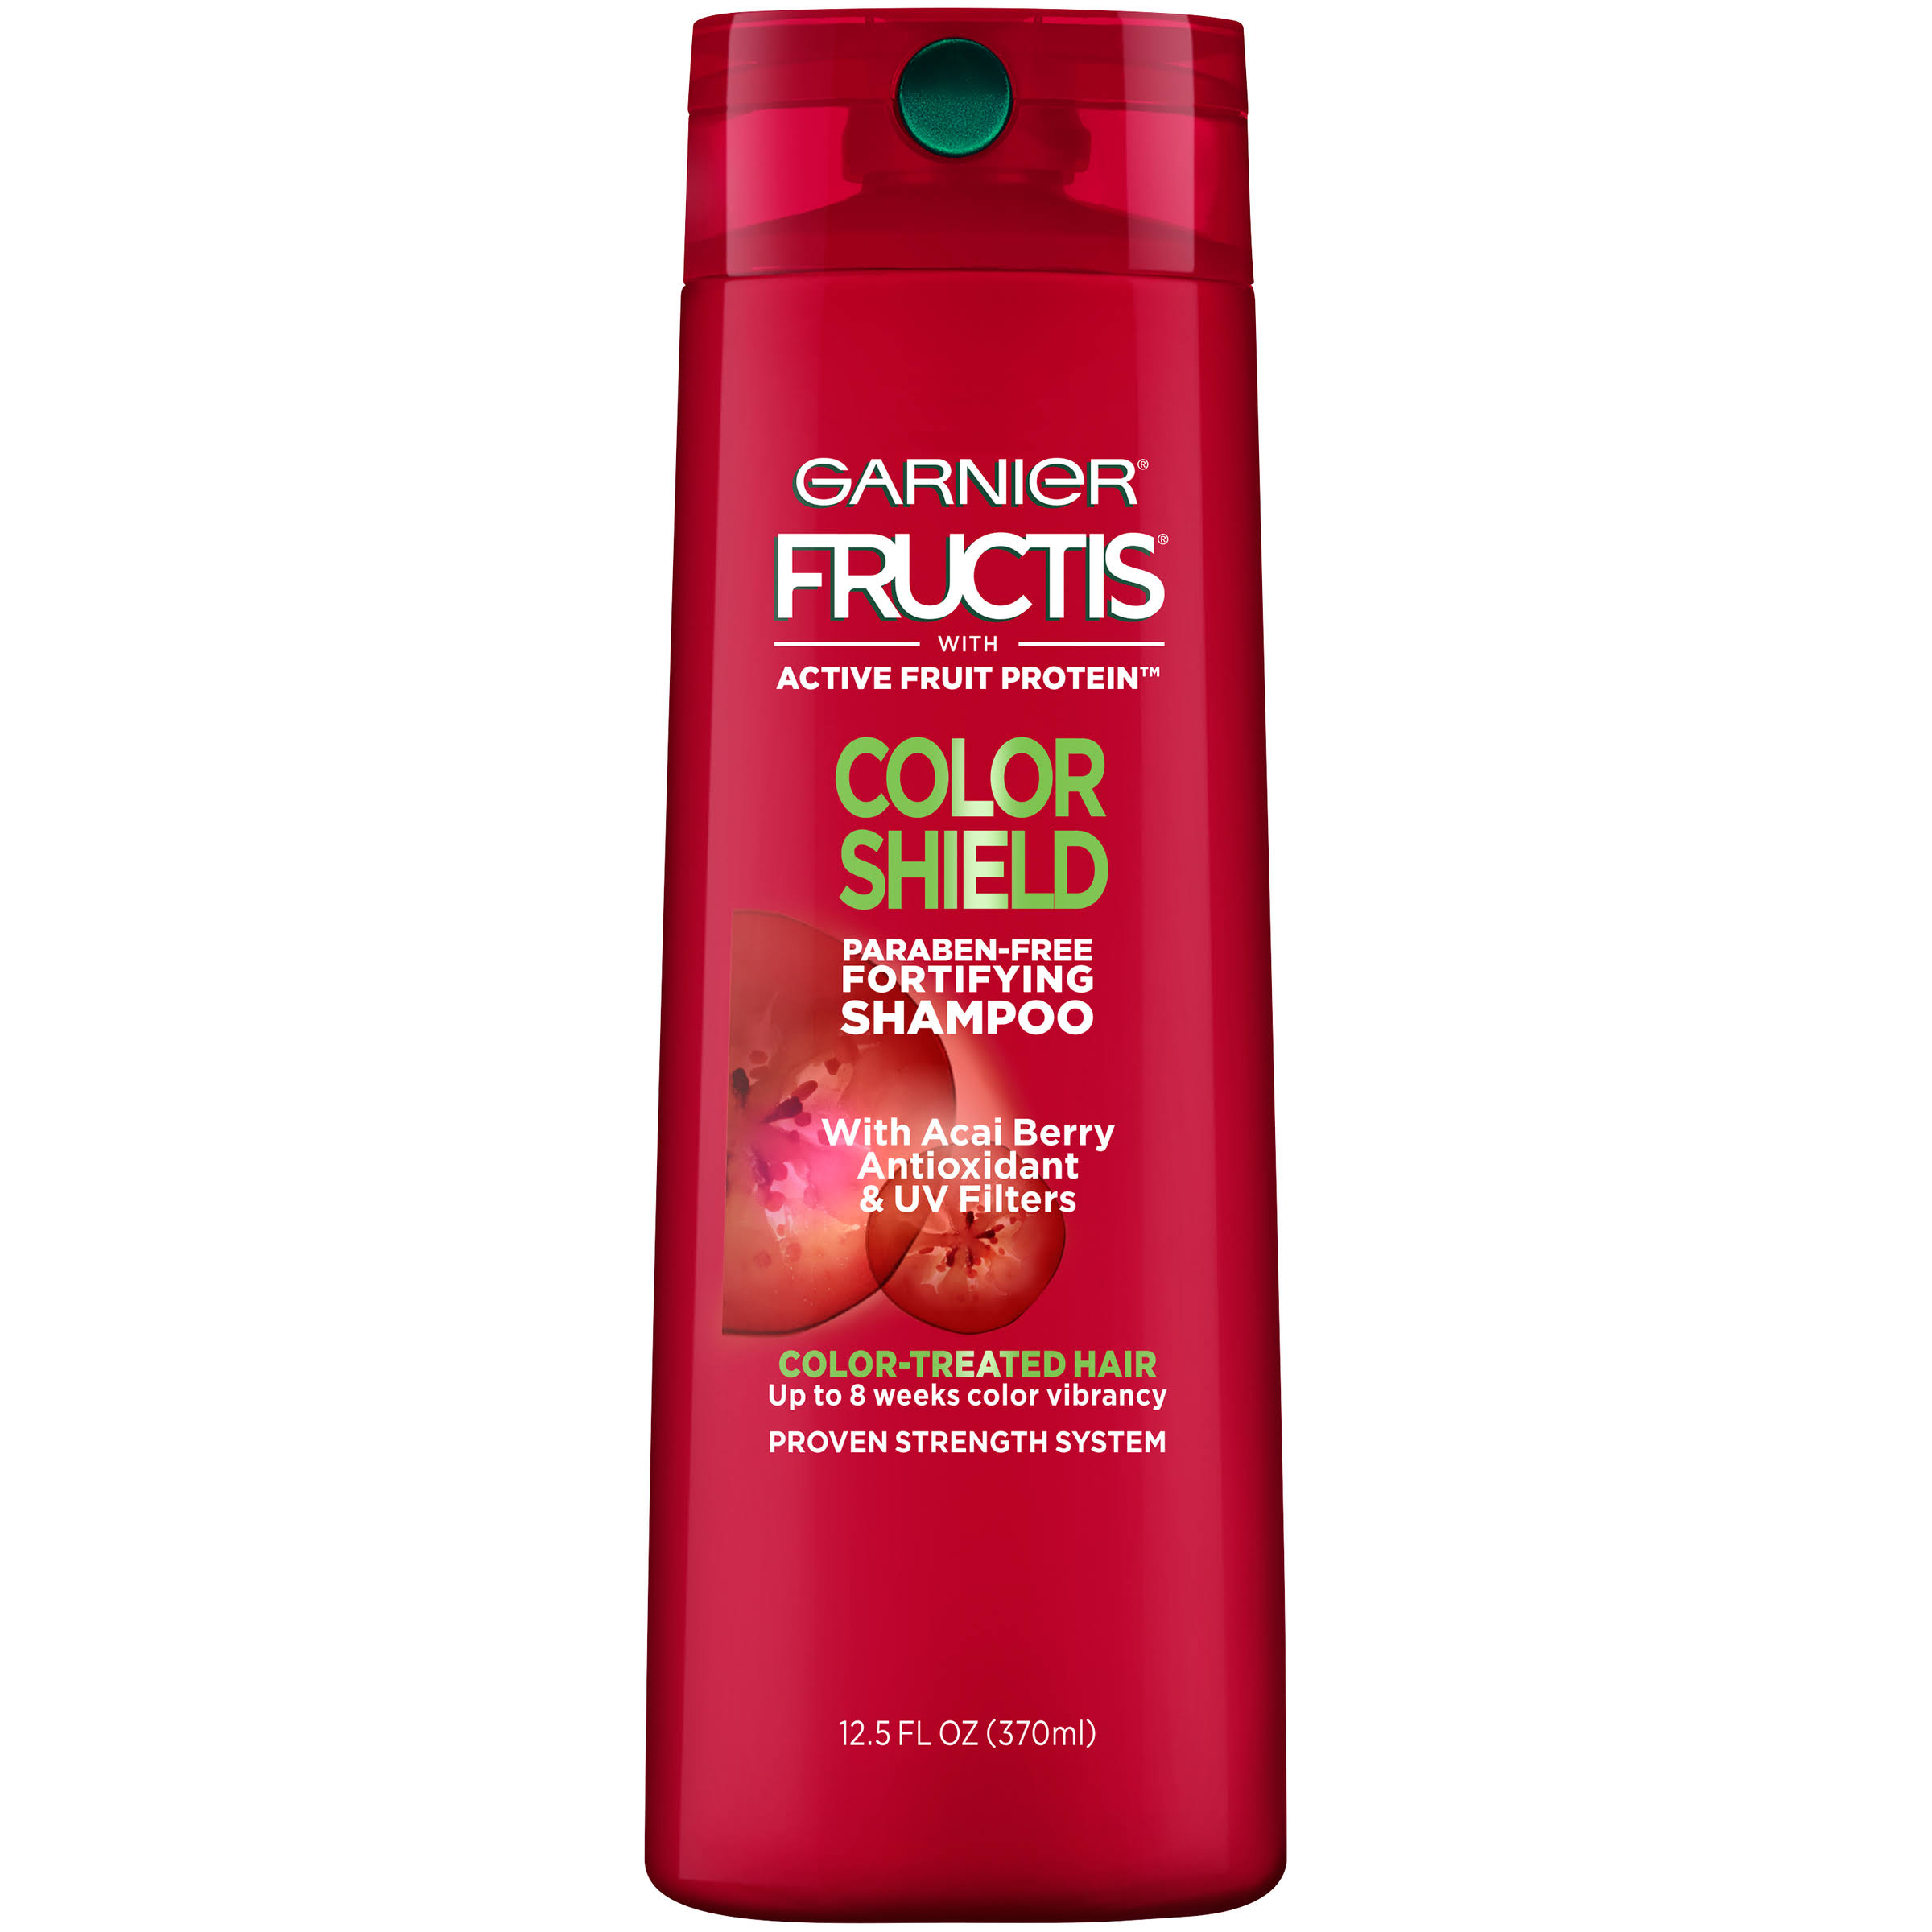 Garnier Fructis Color Shield Fortifying Shampoo - 12.5oz